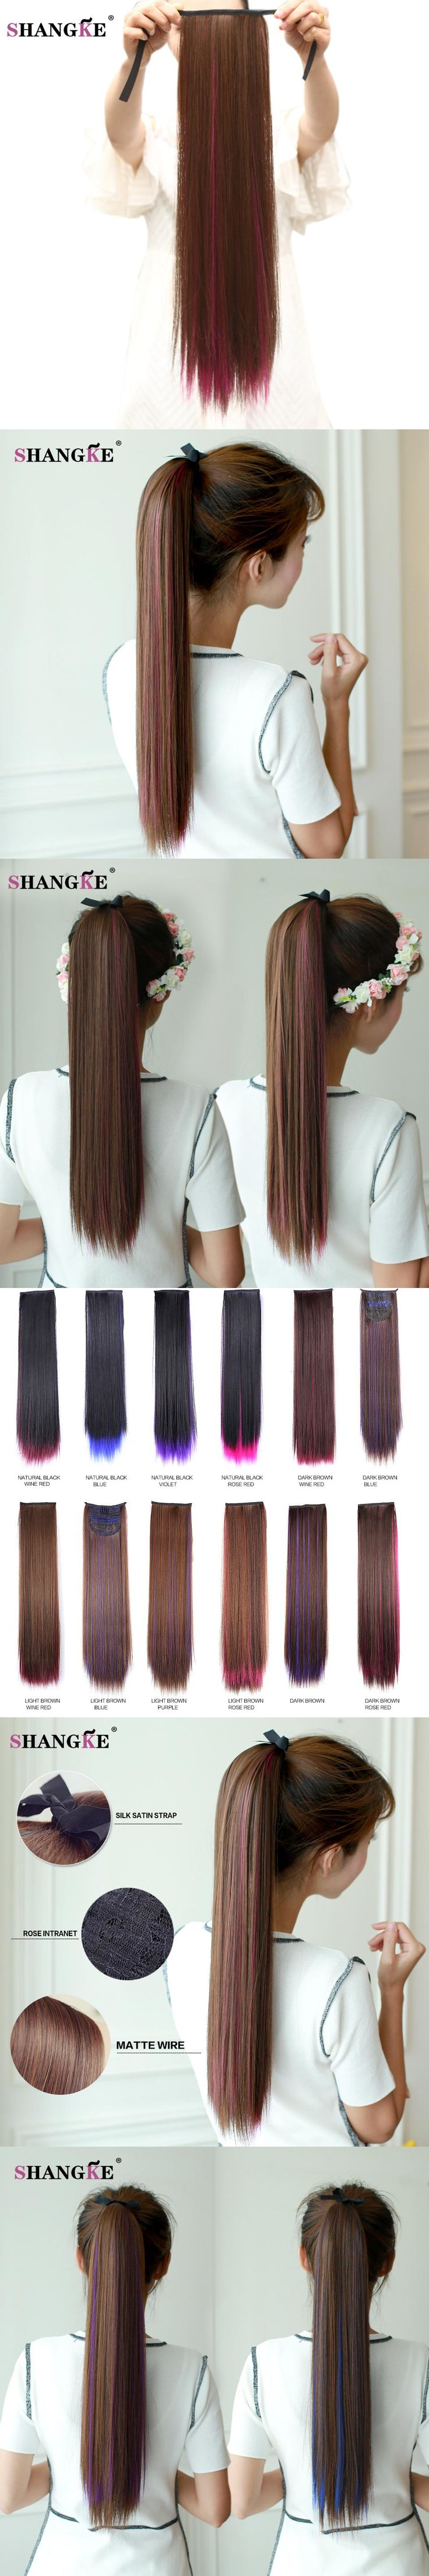 SHANGKE 24'' Long Straight Ponytails Clip In Ponytail Claw Drawstring Ponytail Heat Resistant Clip In Hair Extensions Natural